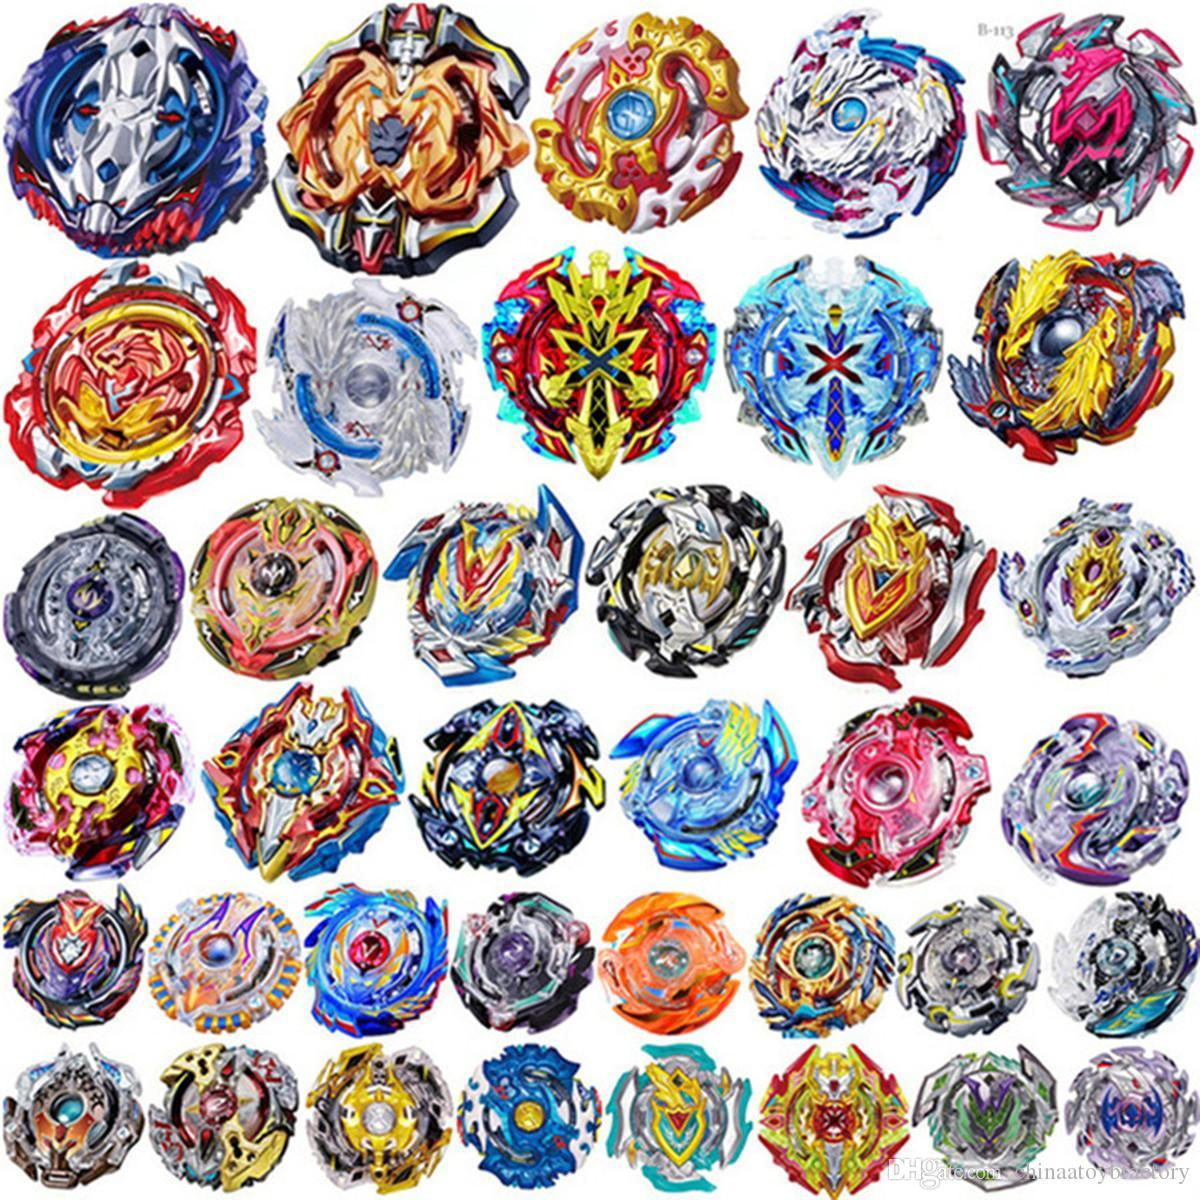 4D Beyblades Bey blades 28 Patterns Without Launcher and Box Toys Toupie Beyblade Burst Arena Metal Fusion God Spinning Top Bey Blade boys